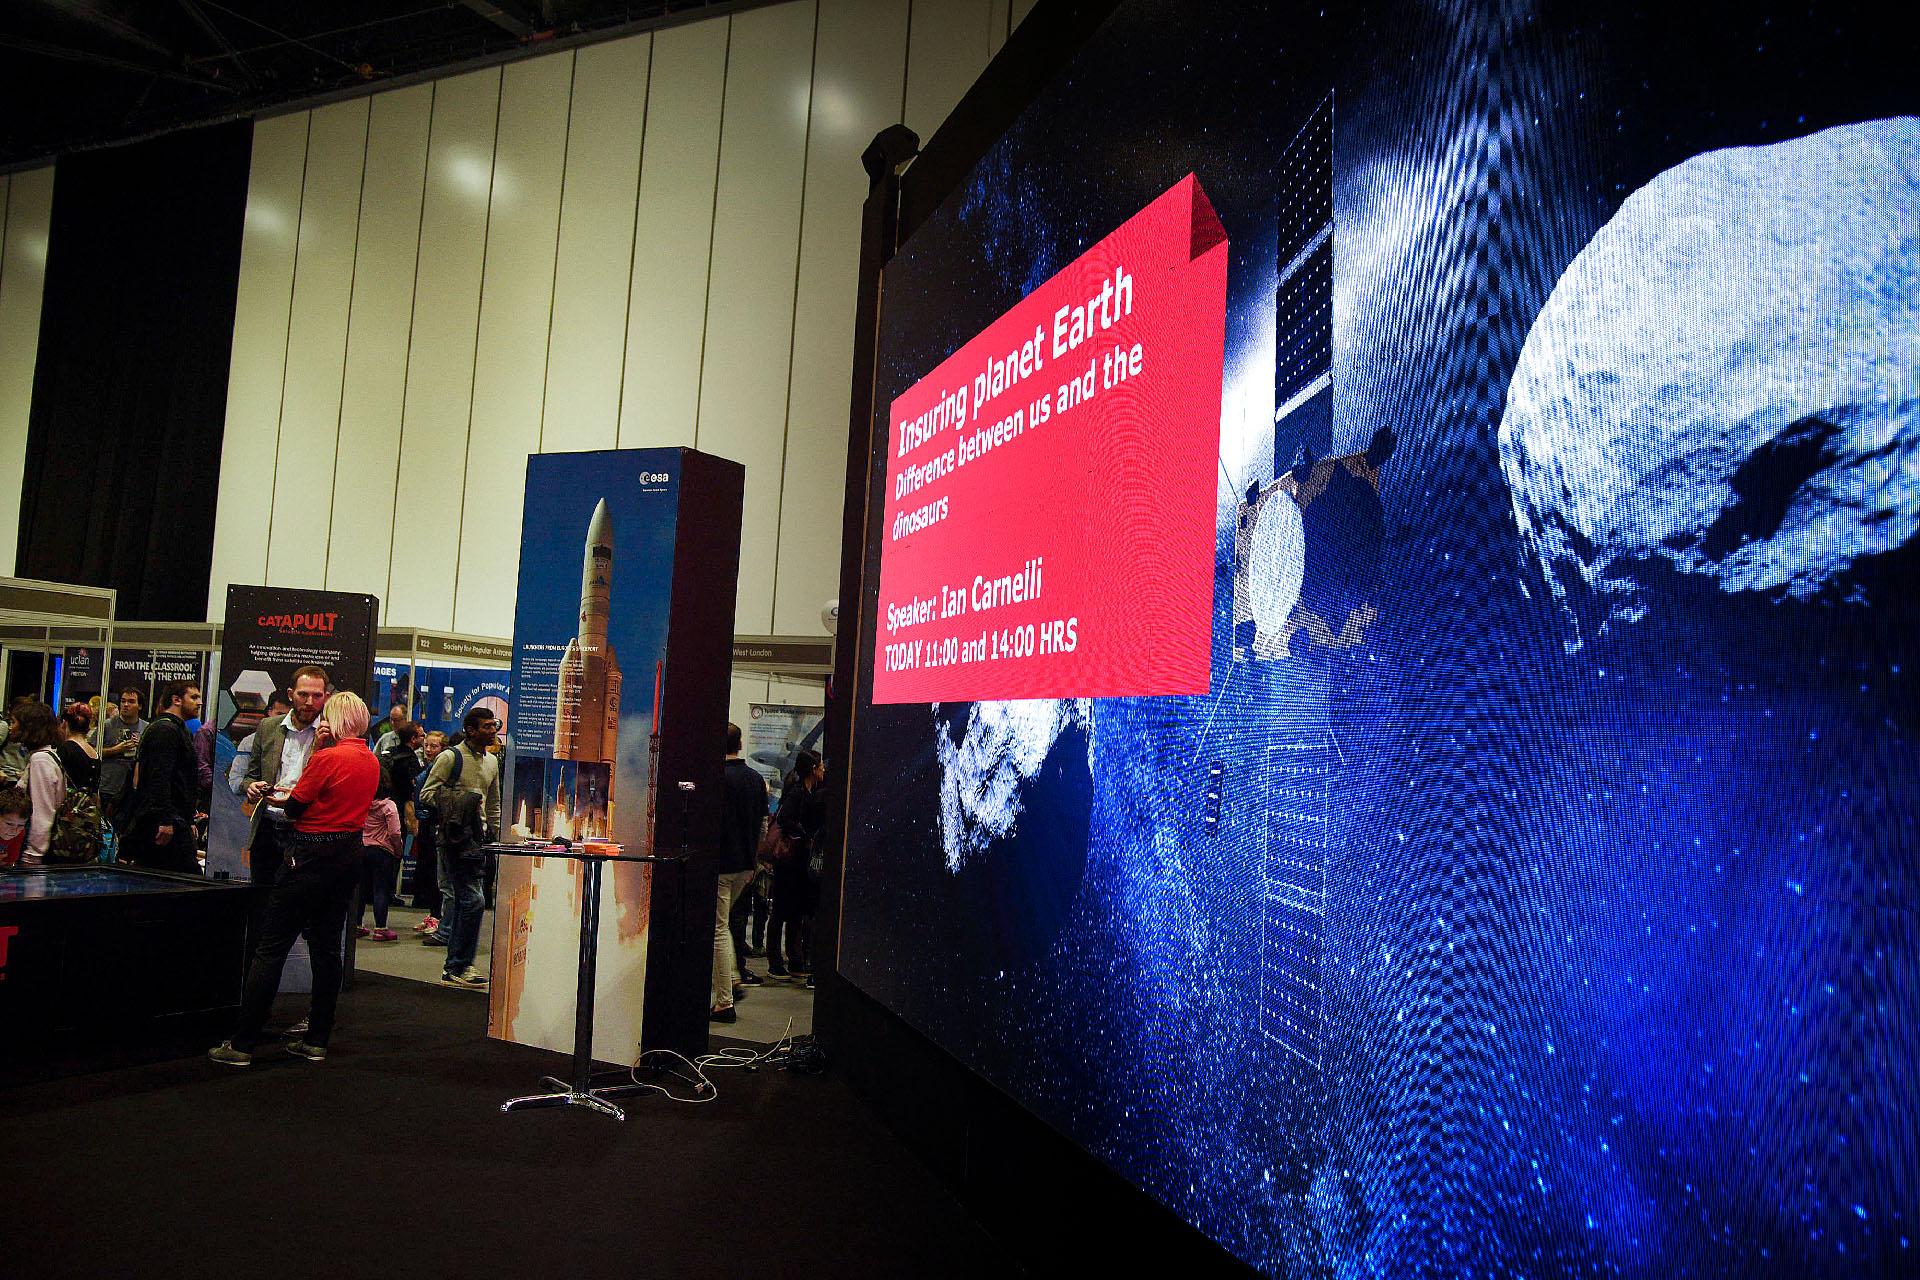 ESA New Scientist Live 2017 Large Format LED Screen Wall by Ouno Creative, Farnborough